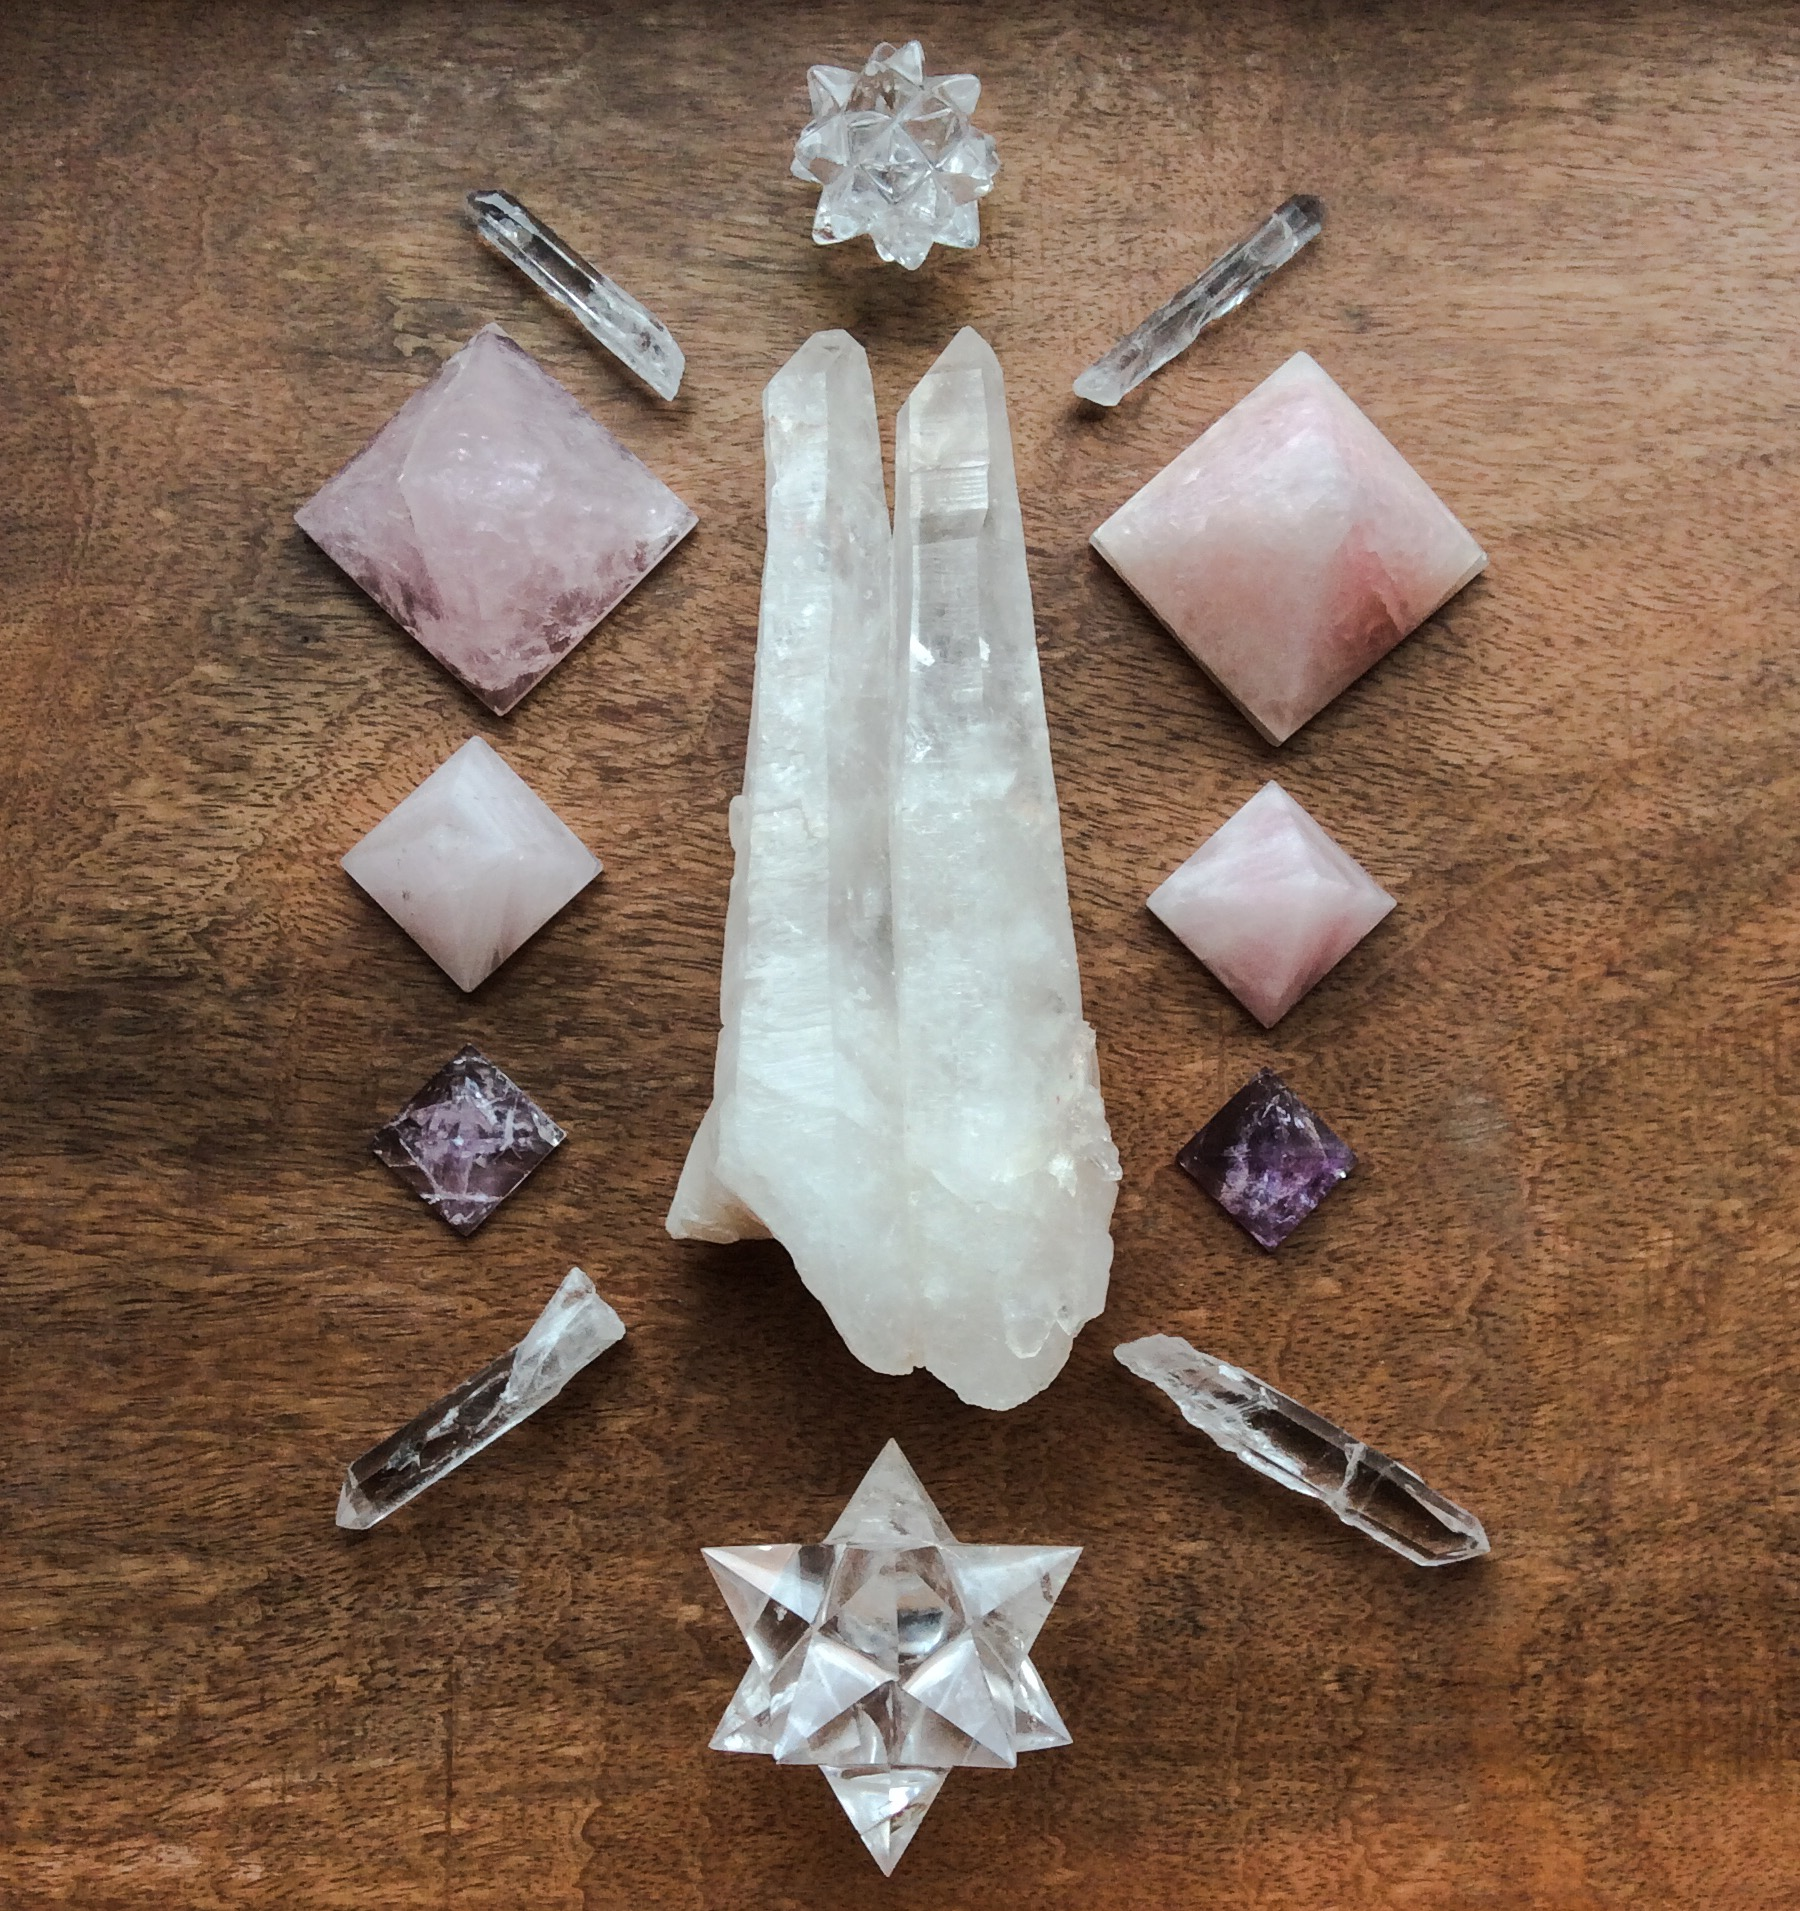 Twin Quartz, Lemurian Quartz, Quartz, Rose Quartz and Amethyst